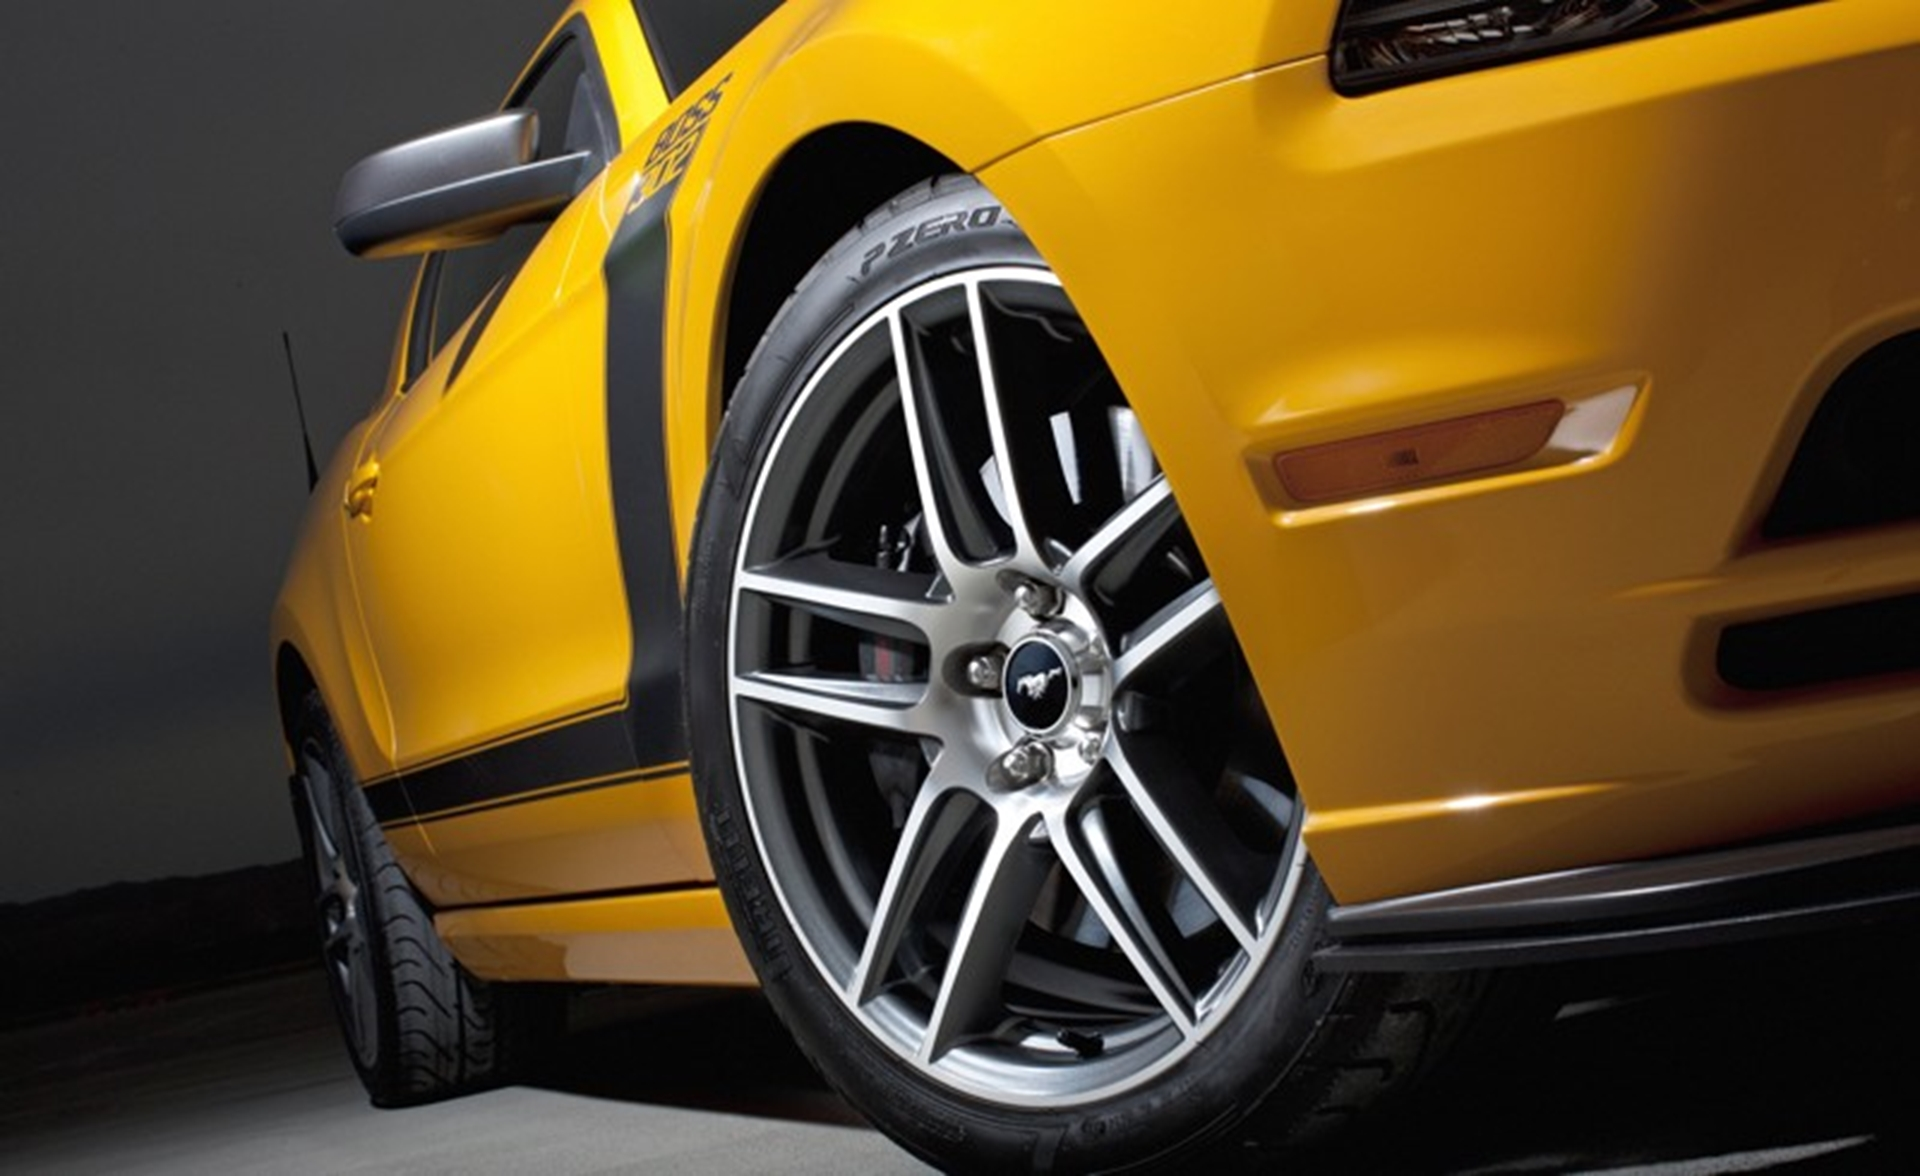 Mustang Boss 302 wheels